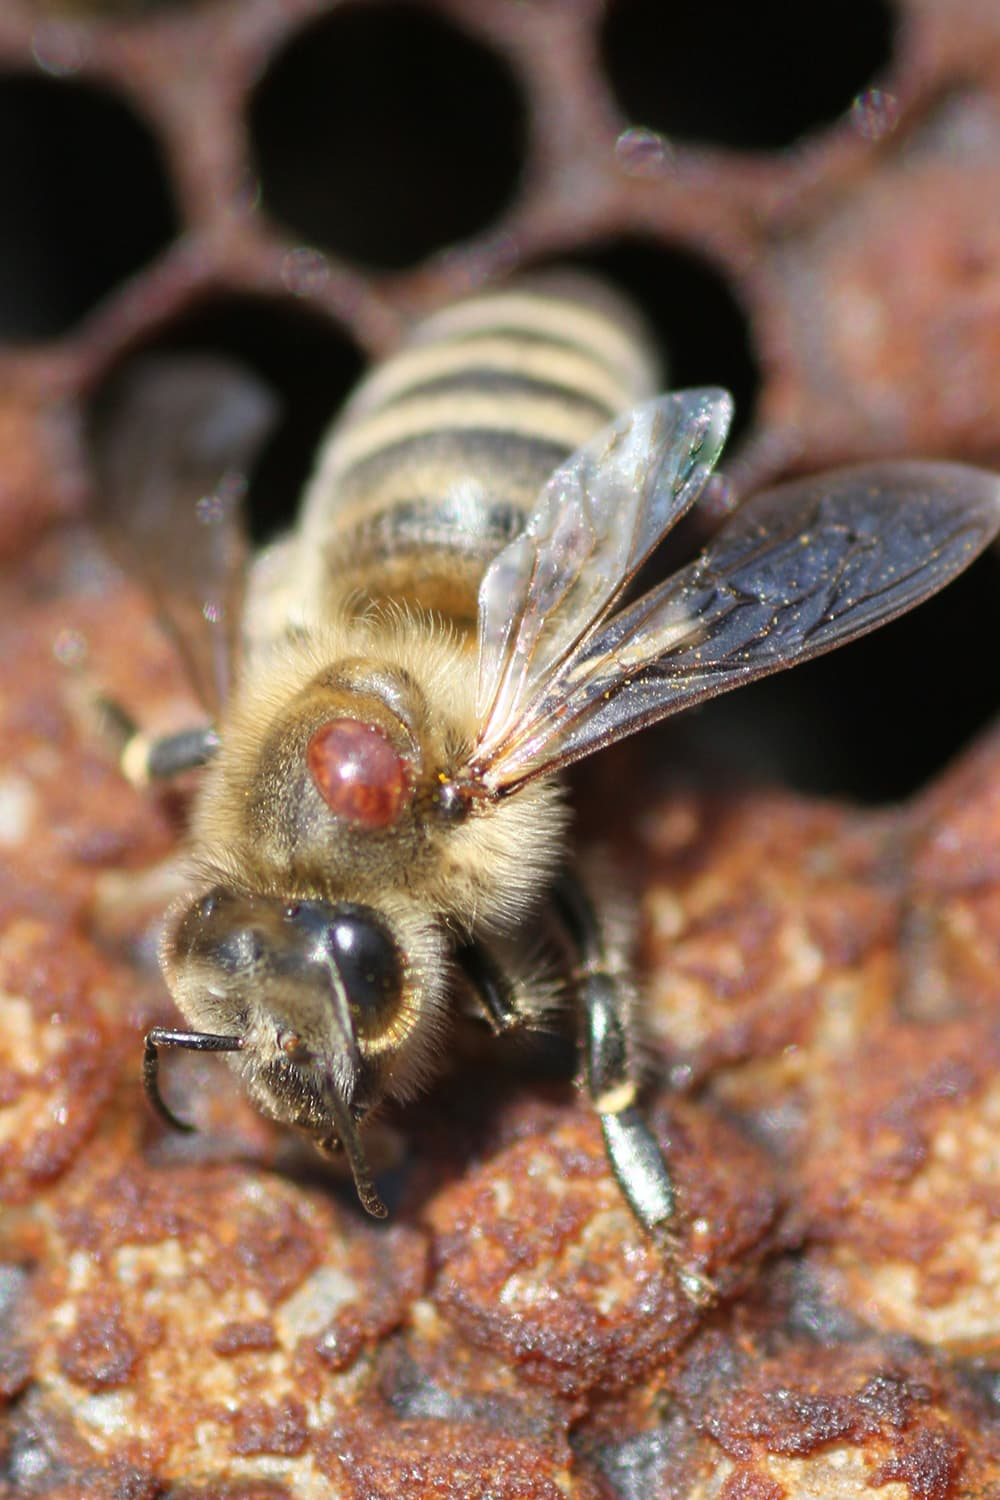 Varroa mite on back of bee